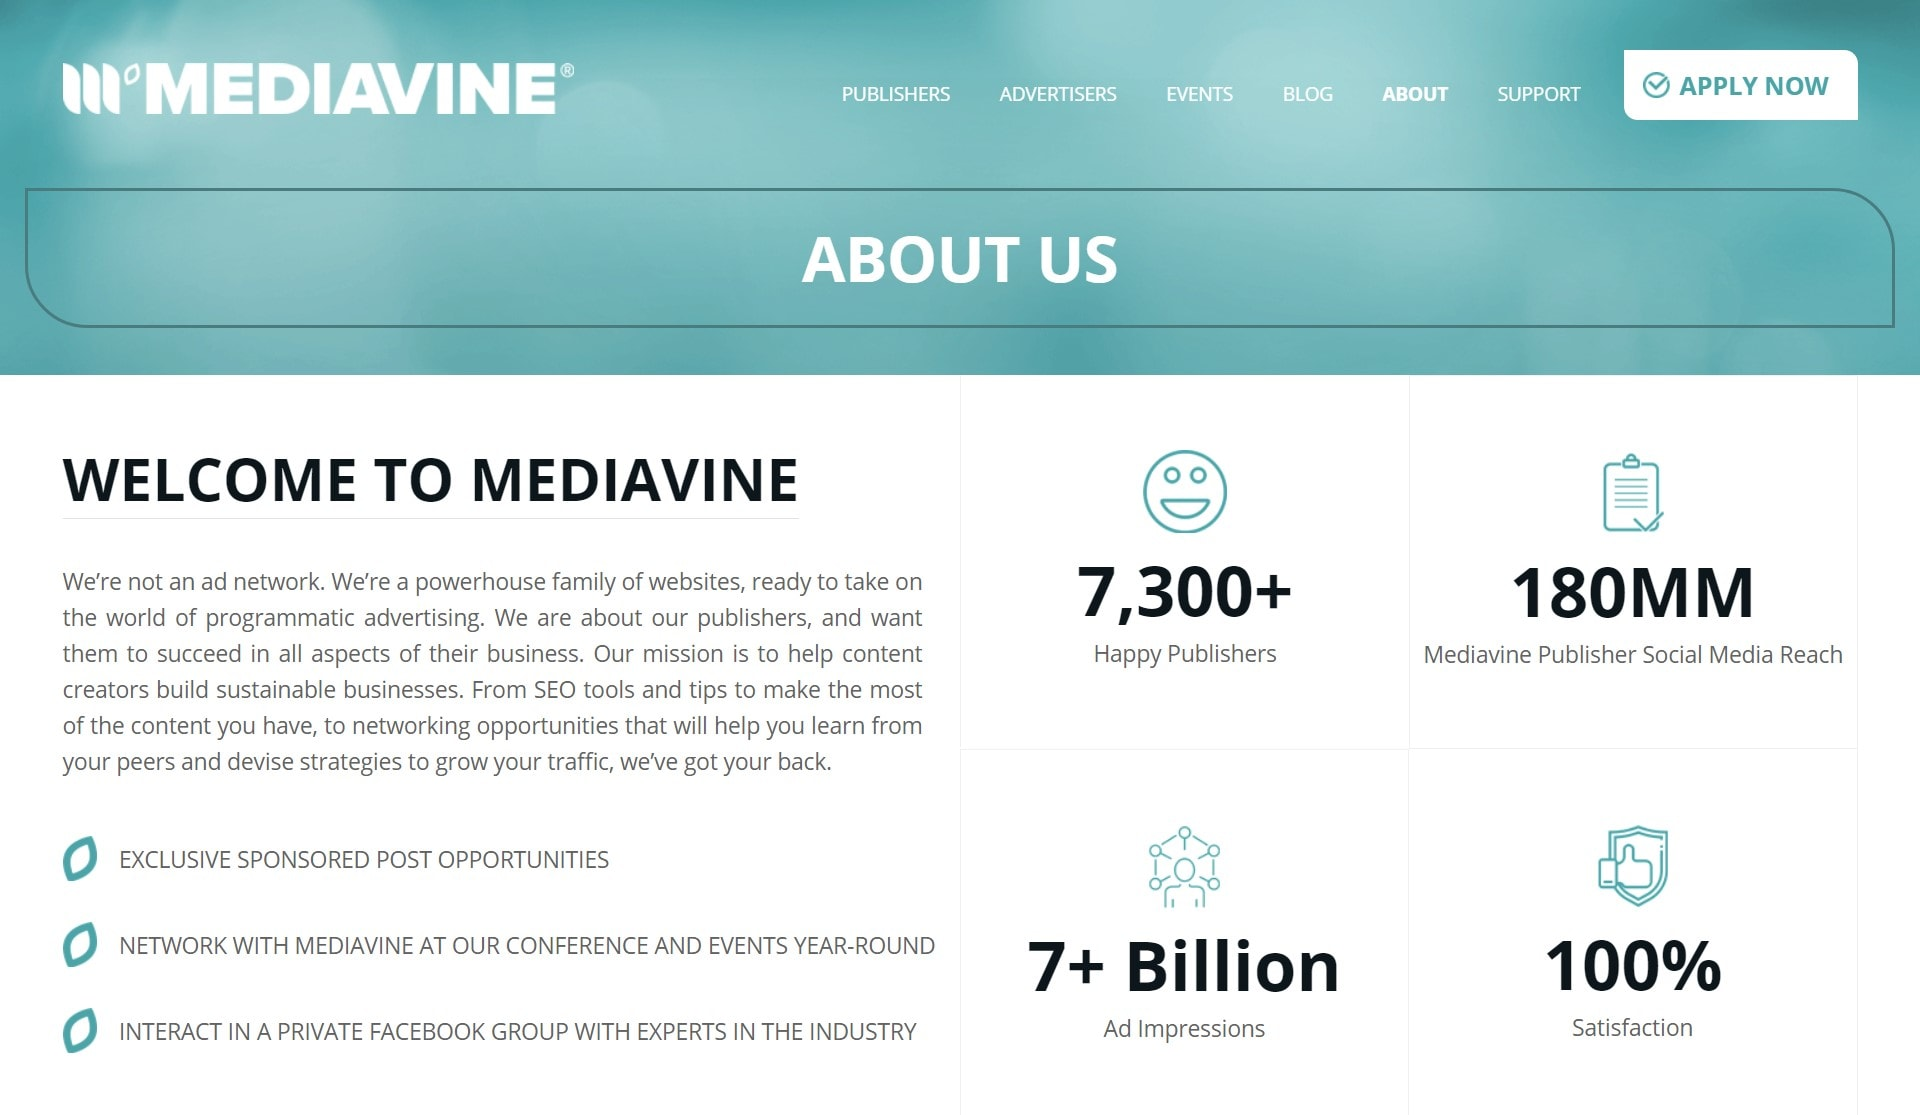 Screengrab from Mediavine 'About Us' page